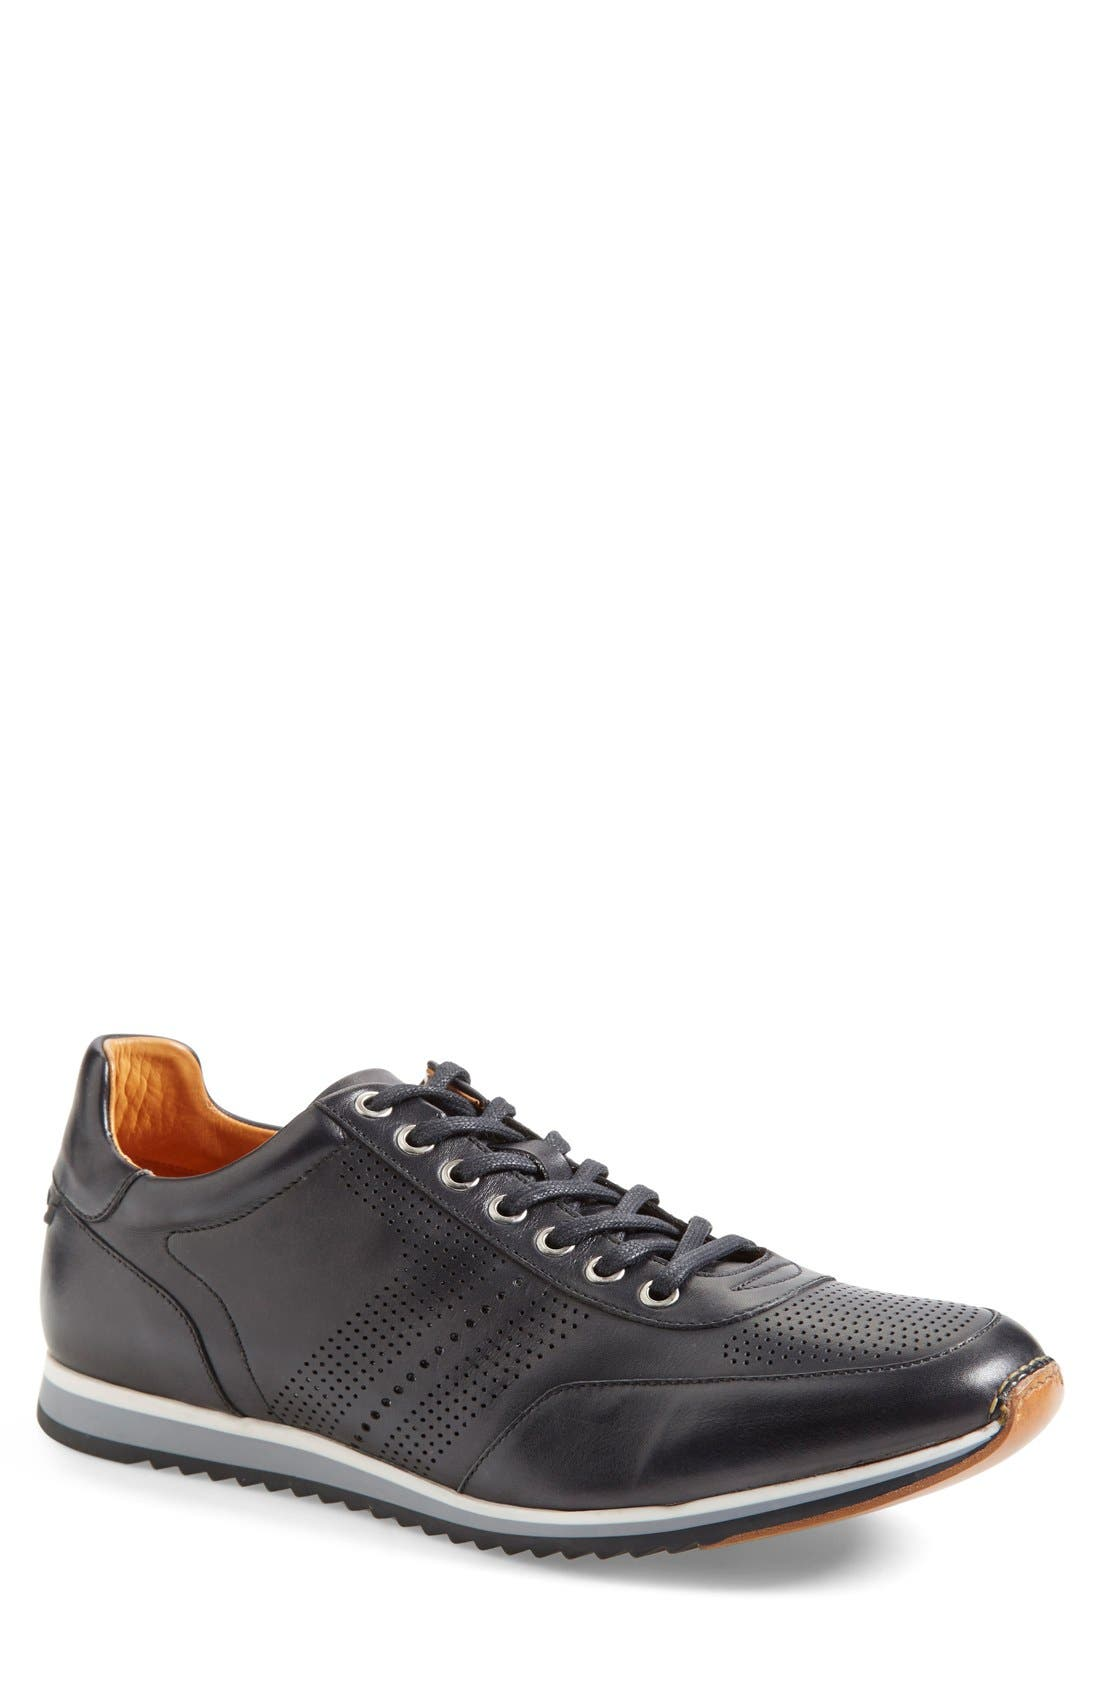 Alternate Image 1 Selected - Magnanni 'Pueblo' Sneaker (Men)